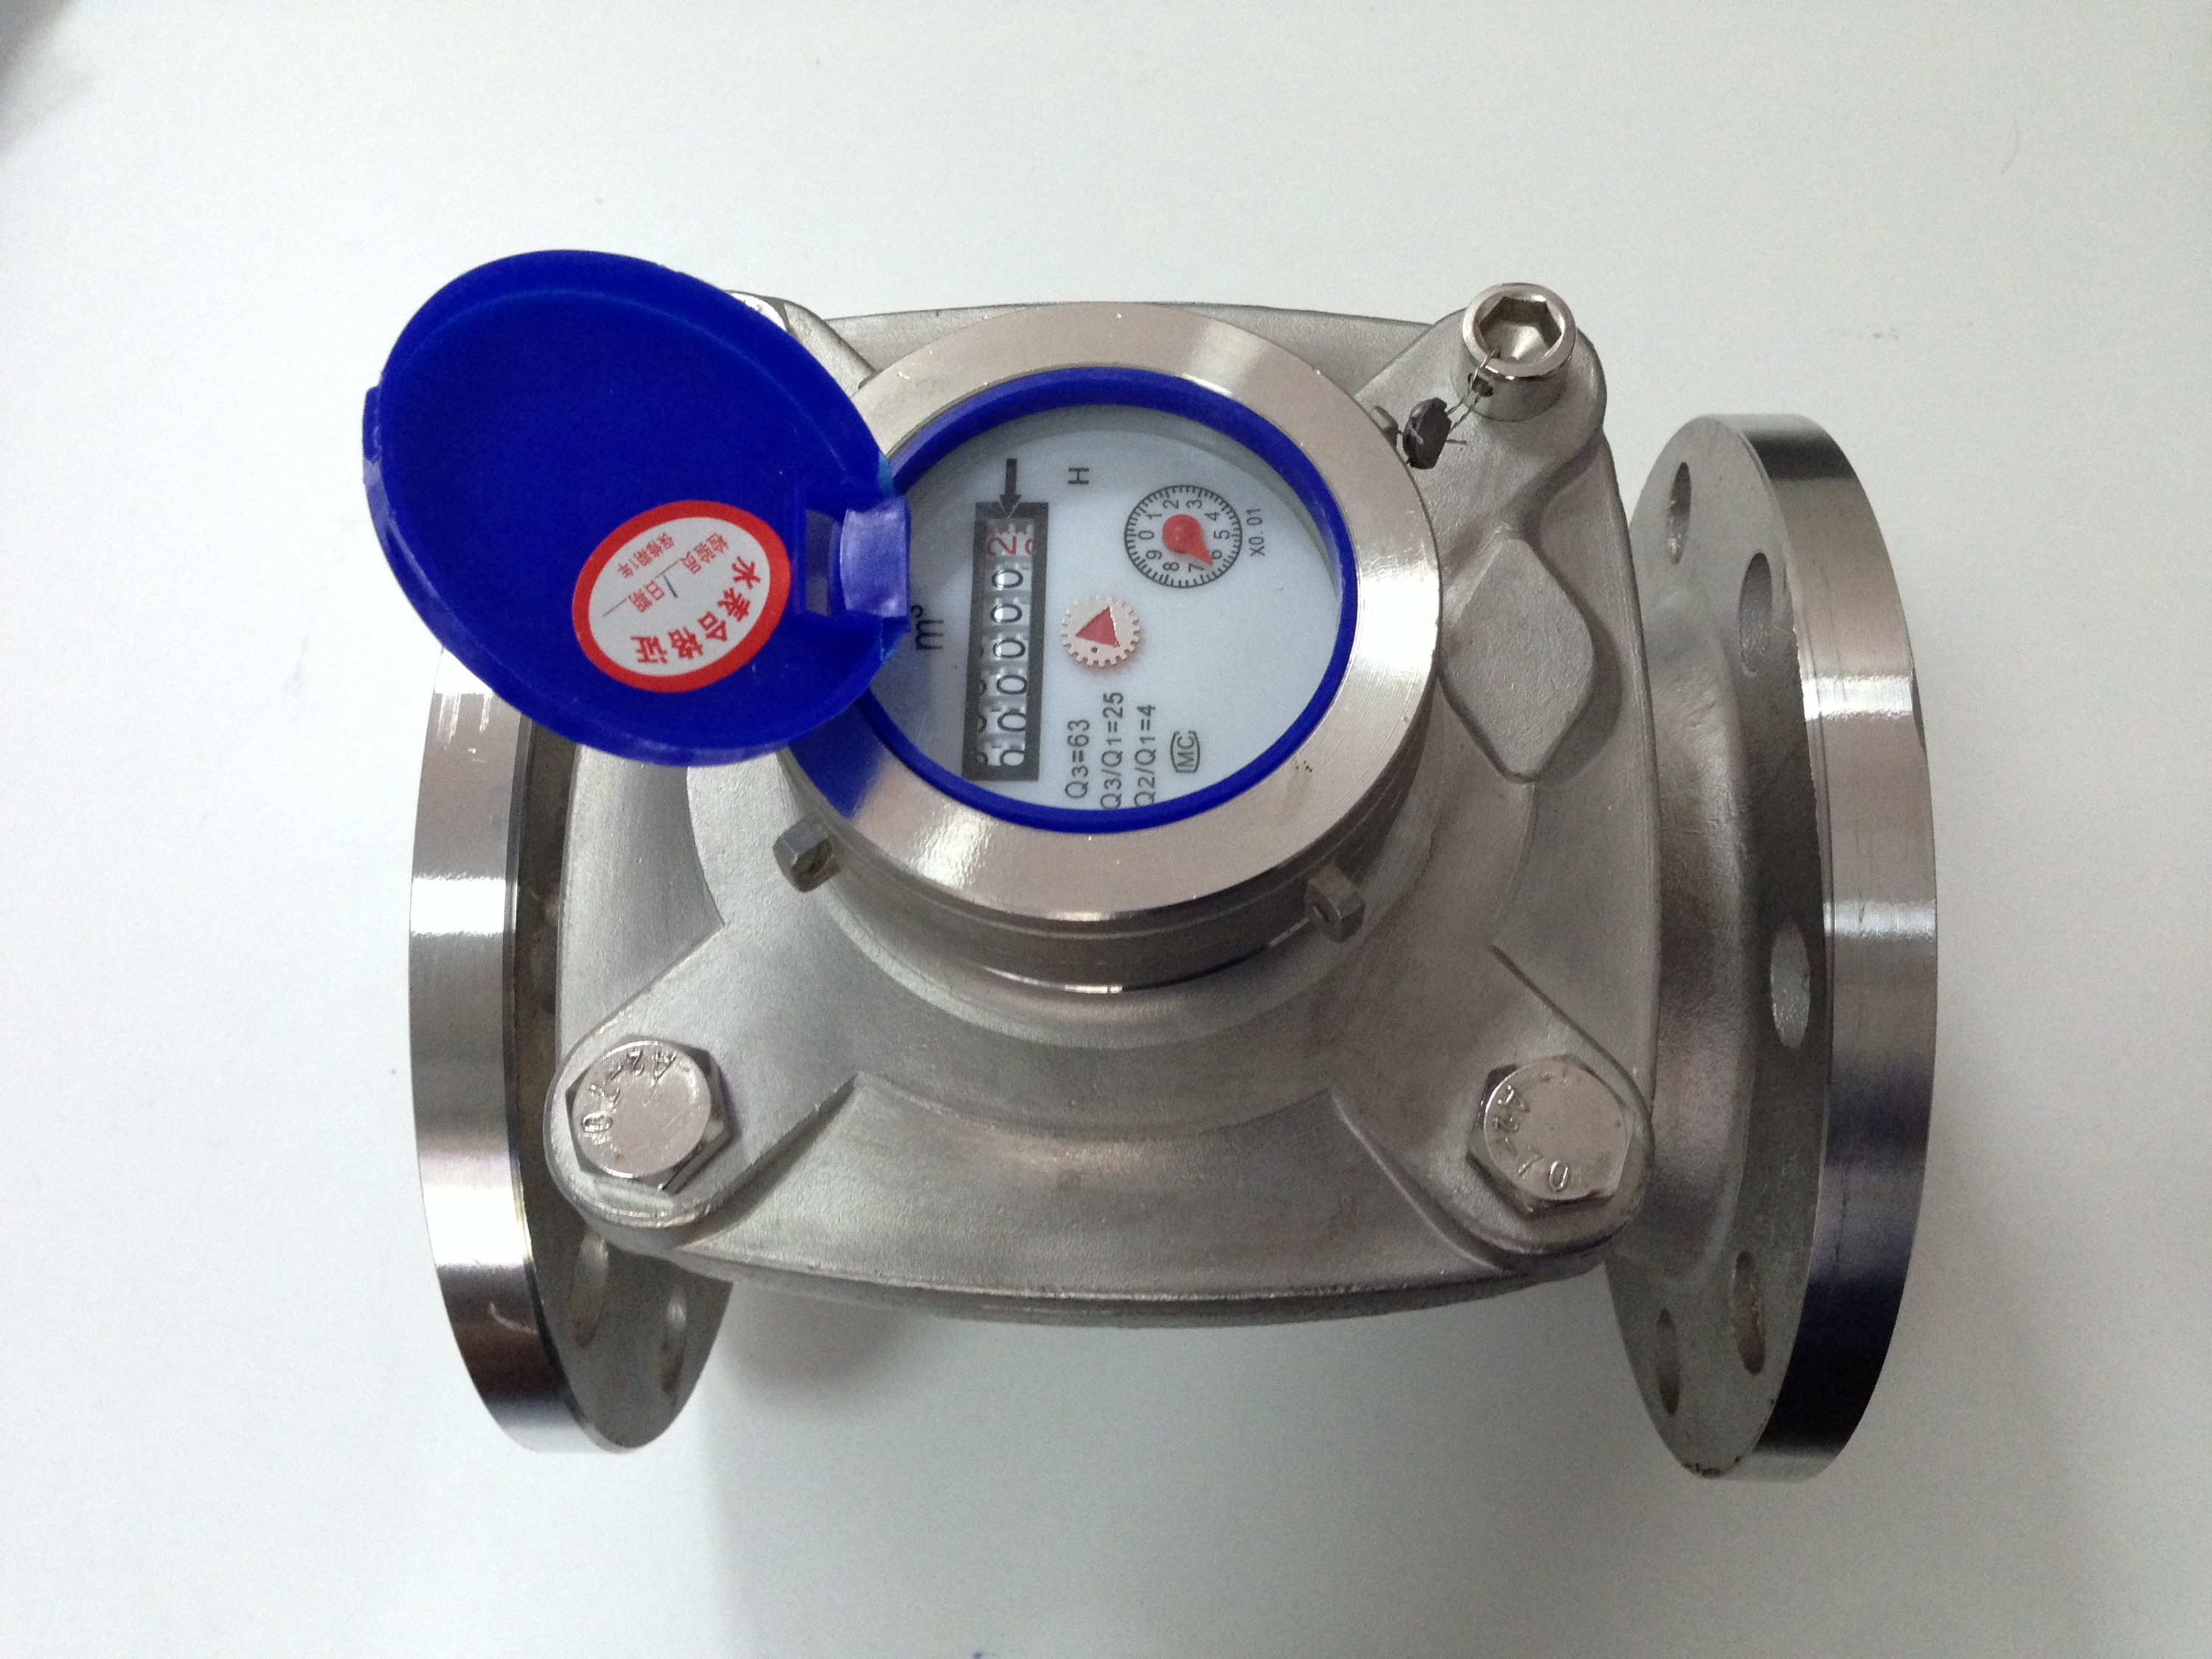 Stainless 304 water meter DN 80